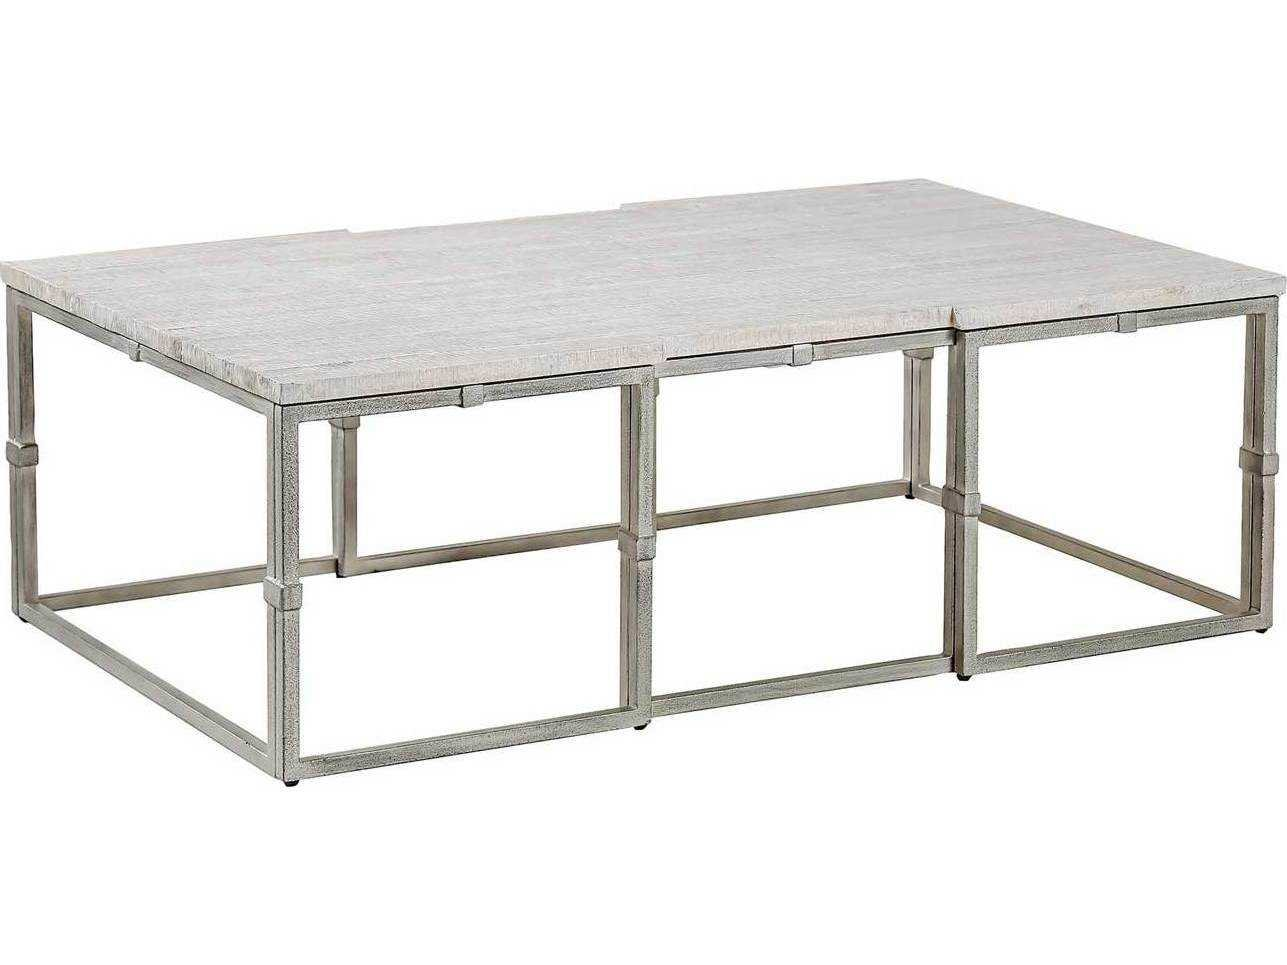 Gabby Alden Whitewashed Wood Brushed Silver 52 W X 32 D Rectangular Coffee Table Sch 151015